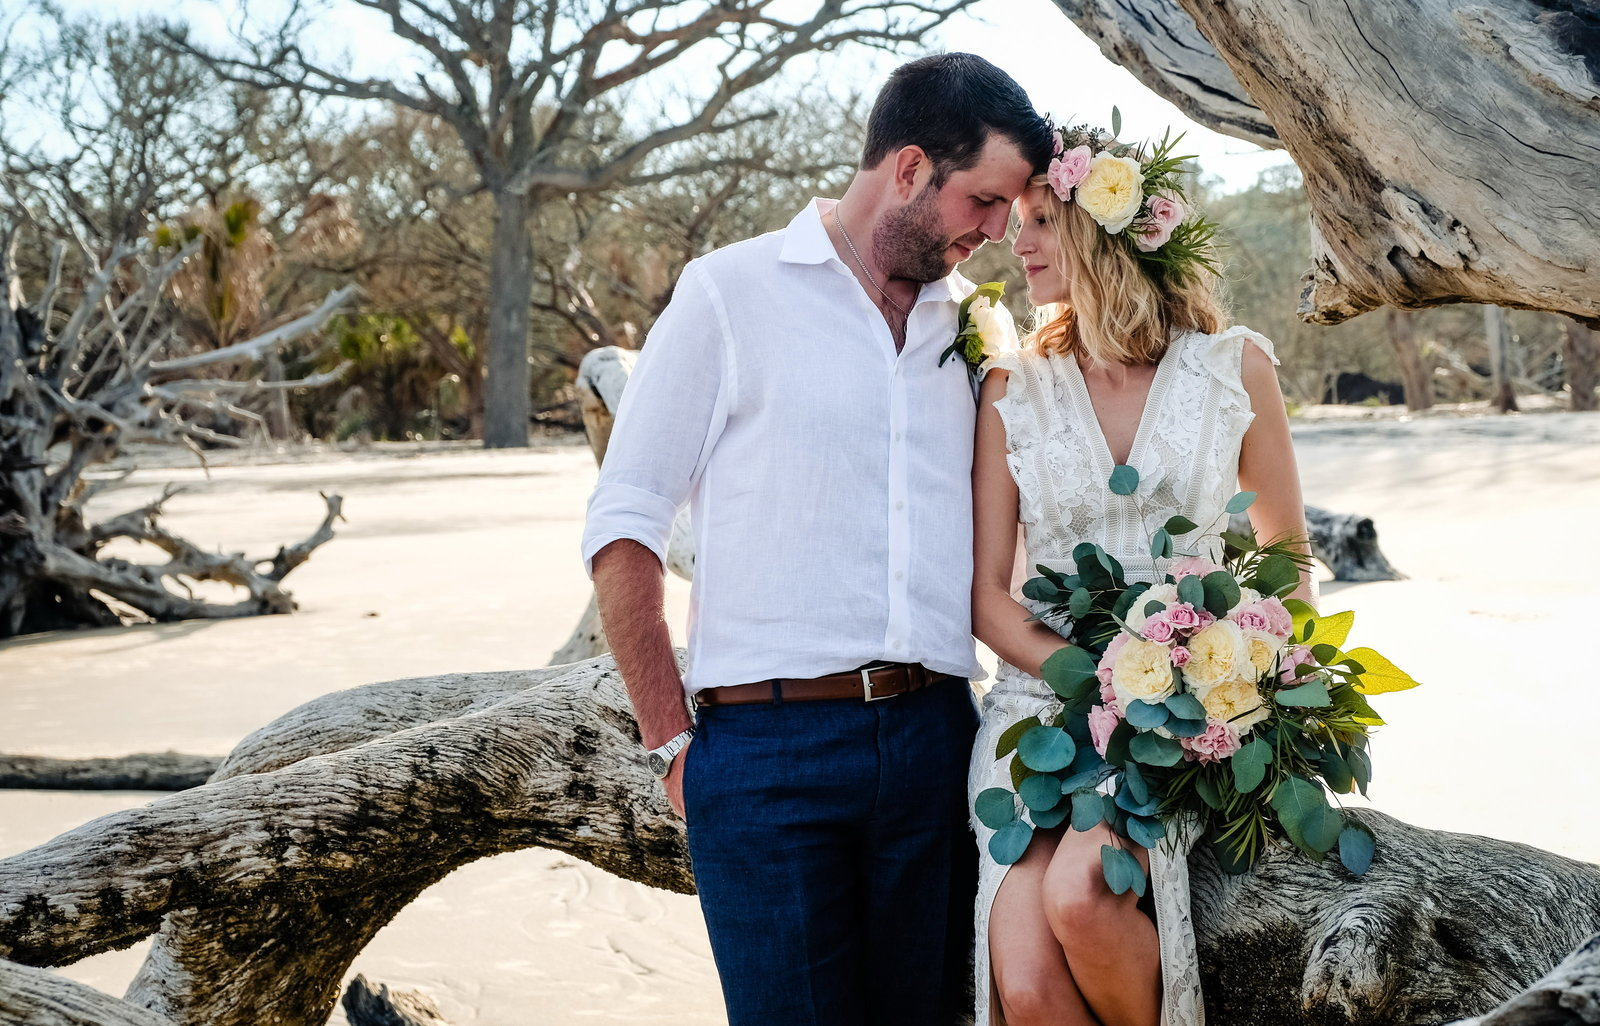 Jekyll Island Weddings, Lance + Julie, Bobbi Brinkman Photography